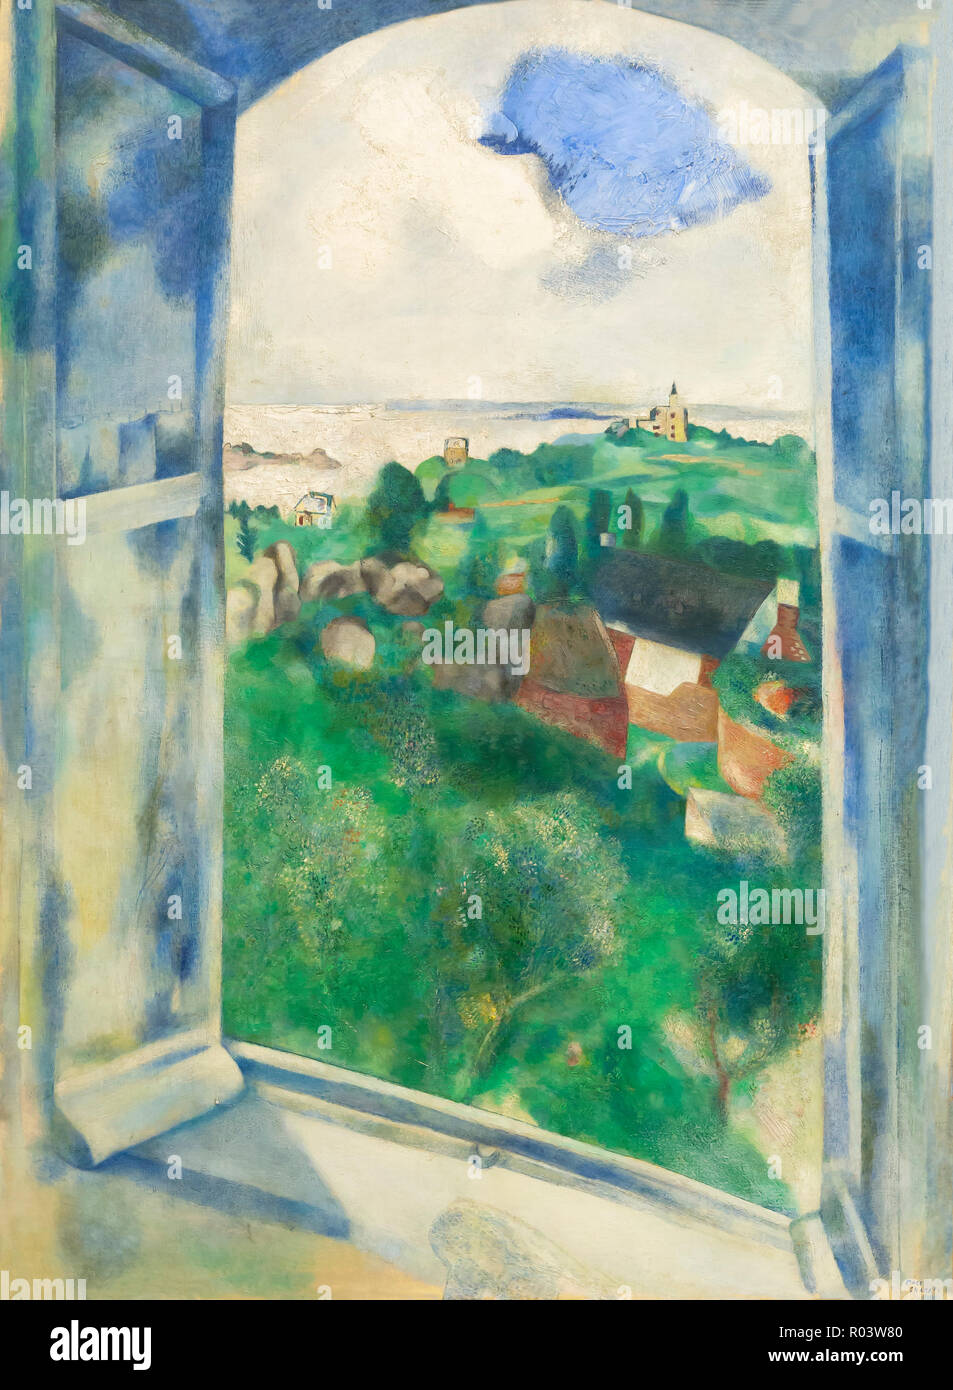 Window View on the Isle of Brehat, , Marc Chagall, 1924, Zurich Kunsthaus, Zurich, Switzerland, Europe - Stock Image